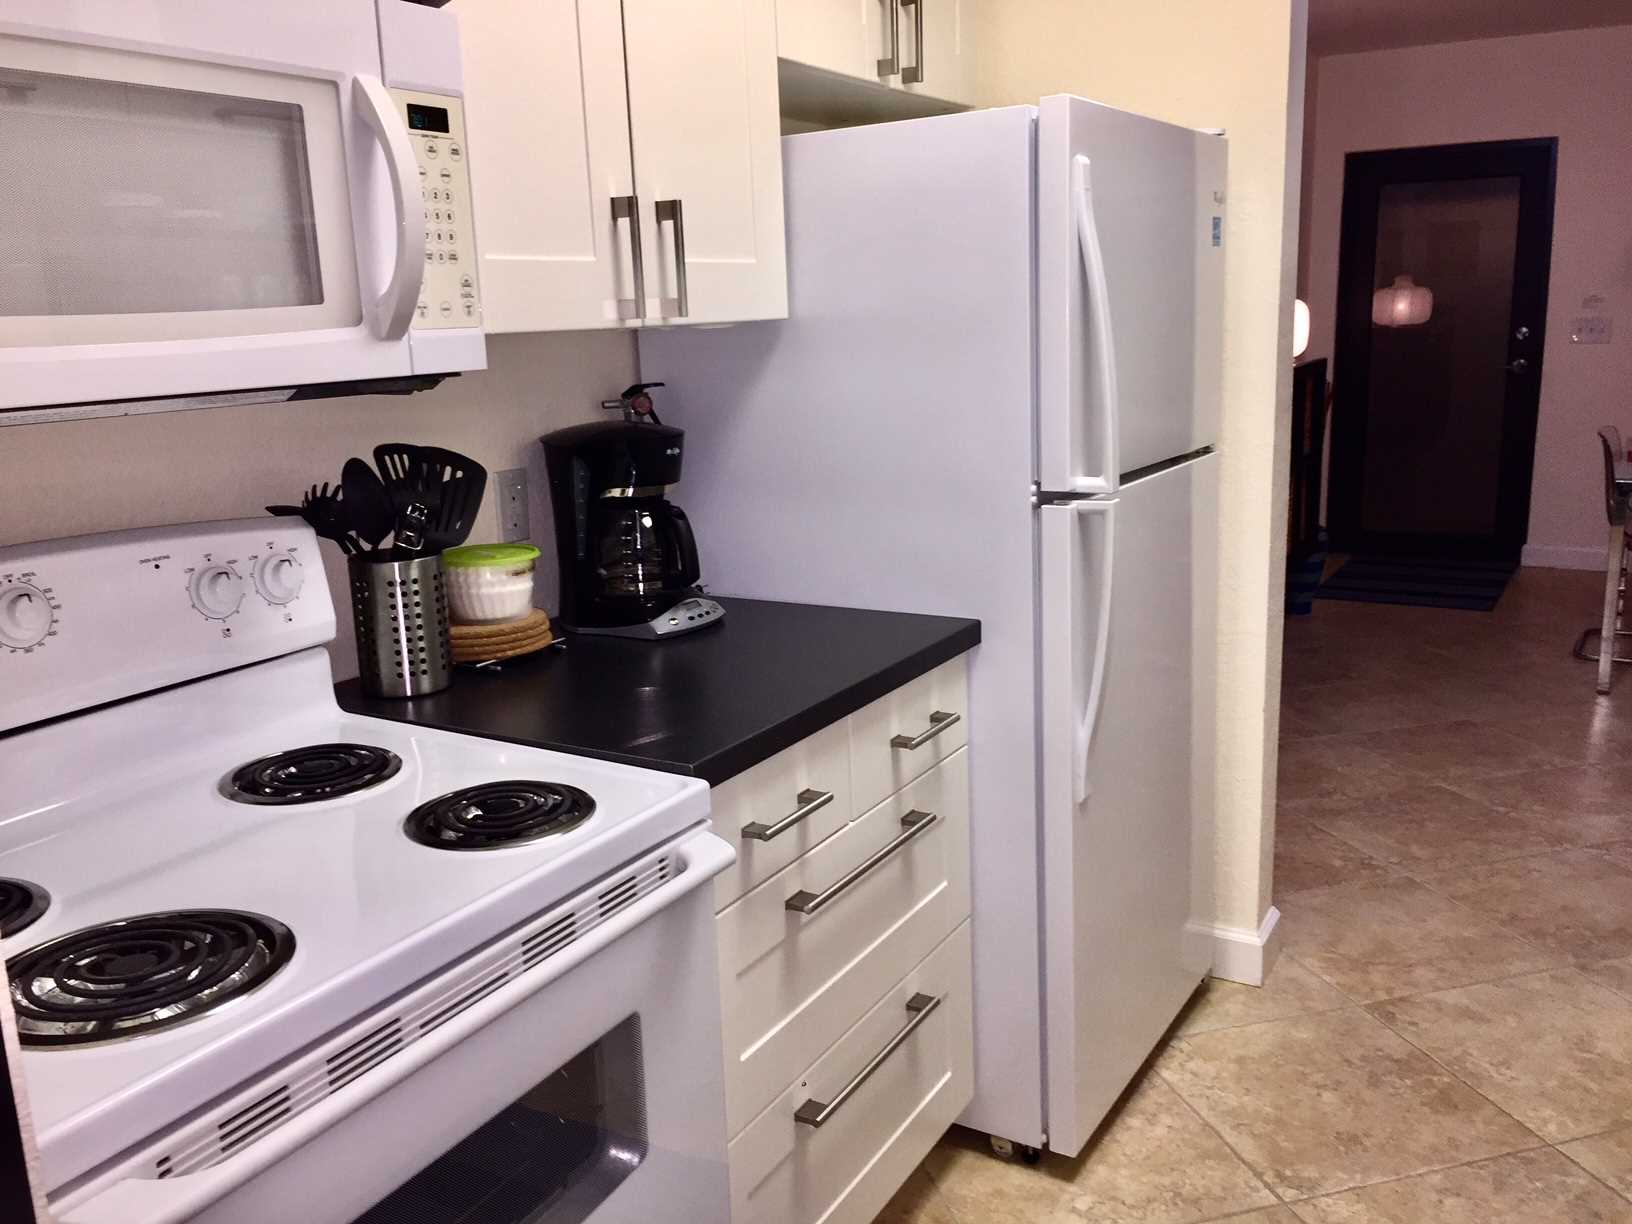 Kitchen has all new appliances including built-in microwave.